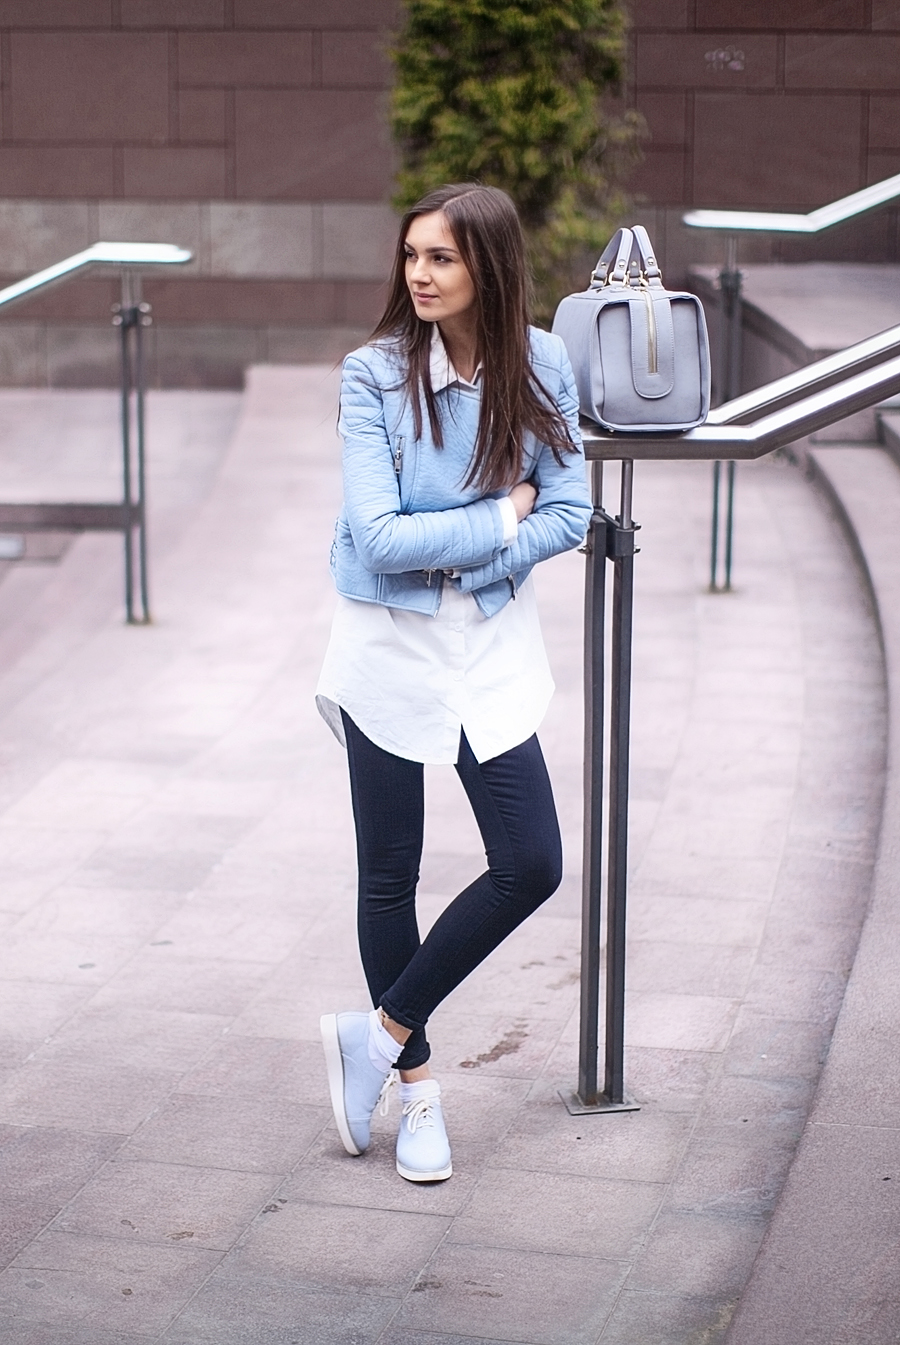 fashion_personal_style_blog_pastel_leather_jacket_white_shirt_black_skinny_jeans_street_style_blogger_outfit_look_zara_5